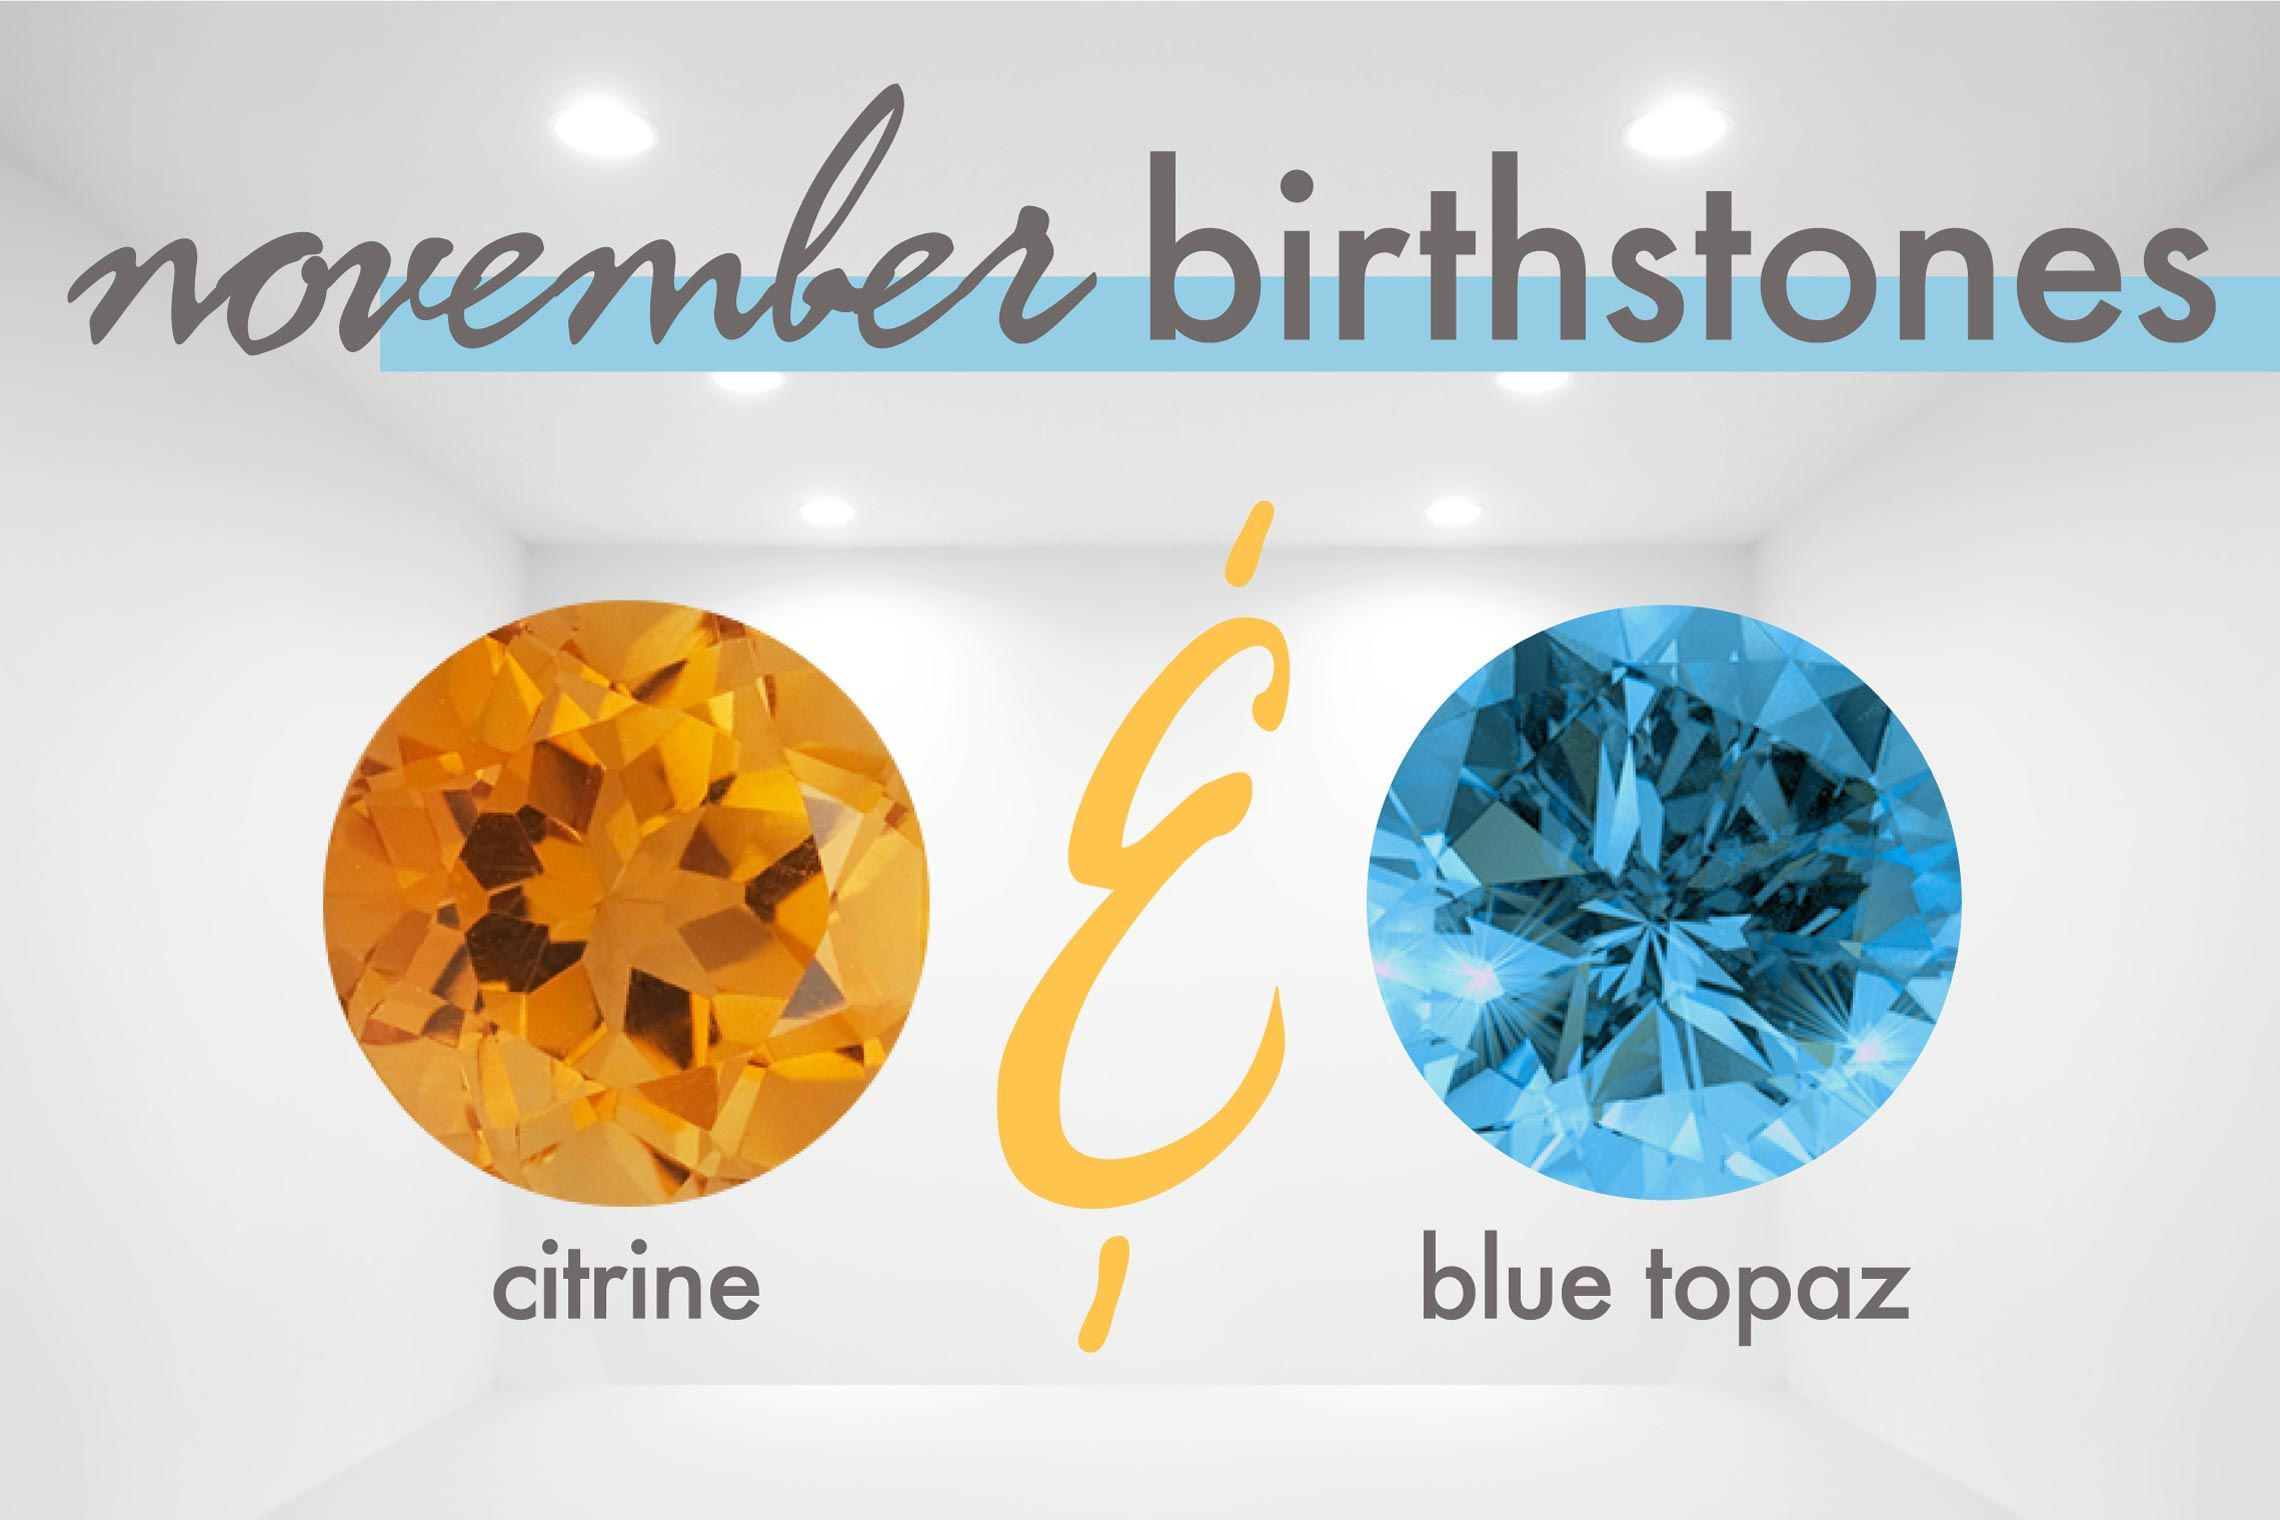 The birthstones for November are Citrine and Topaz. Citrine is a ...